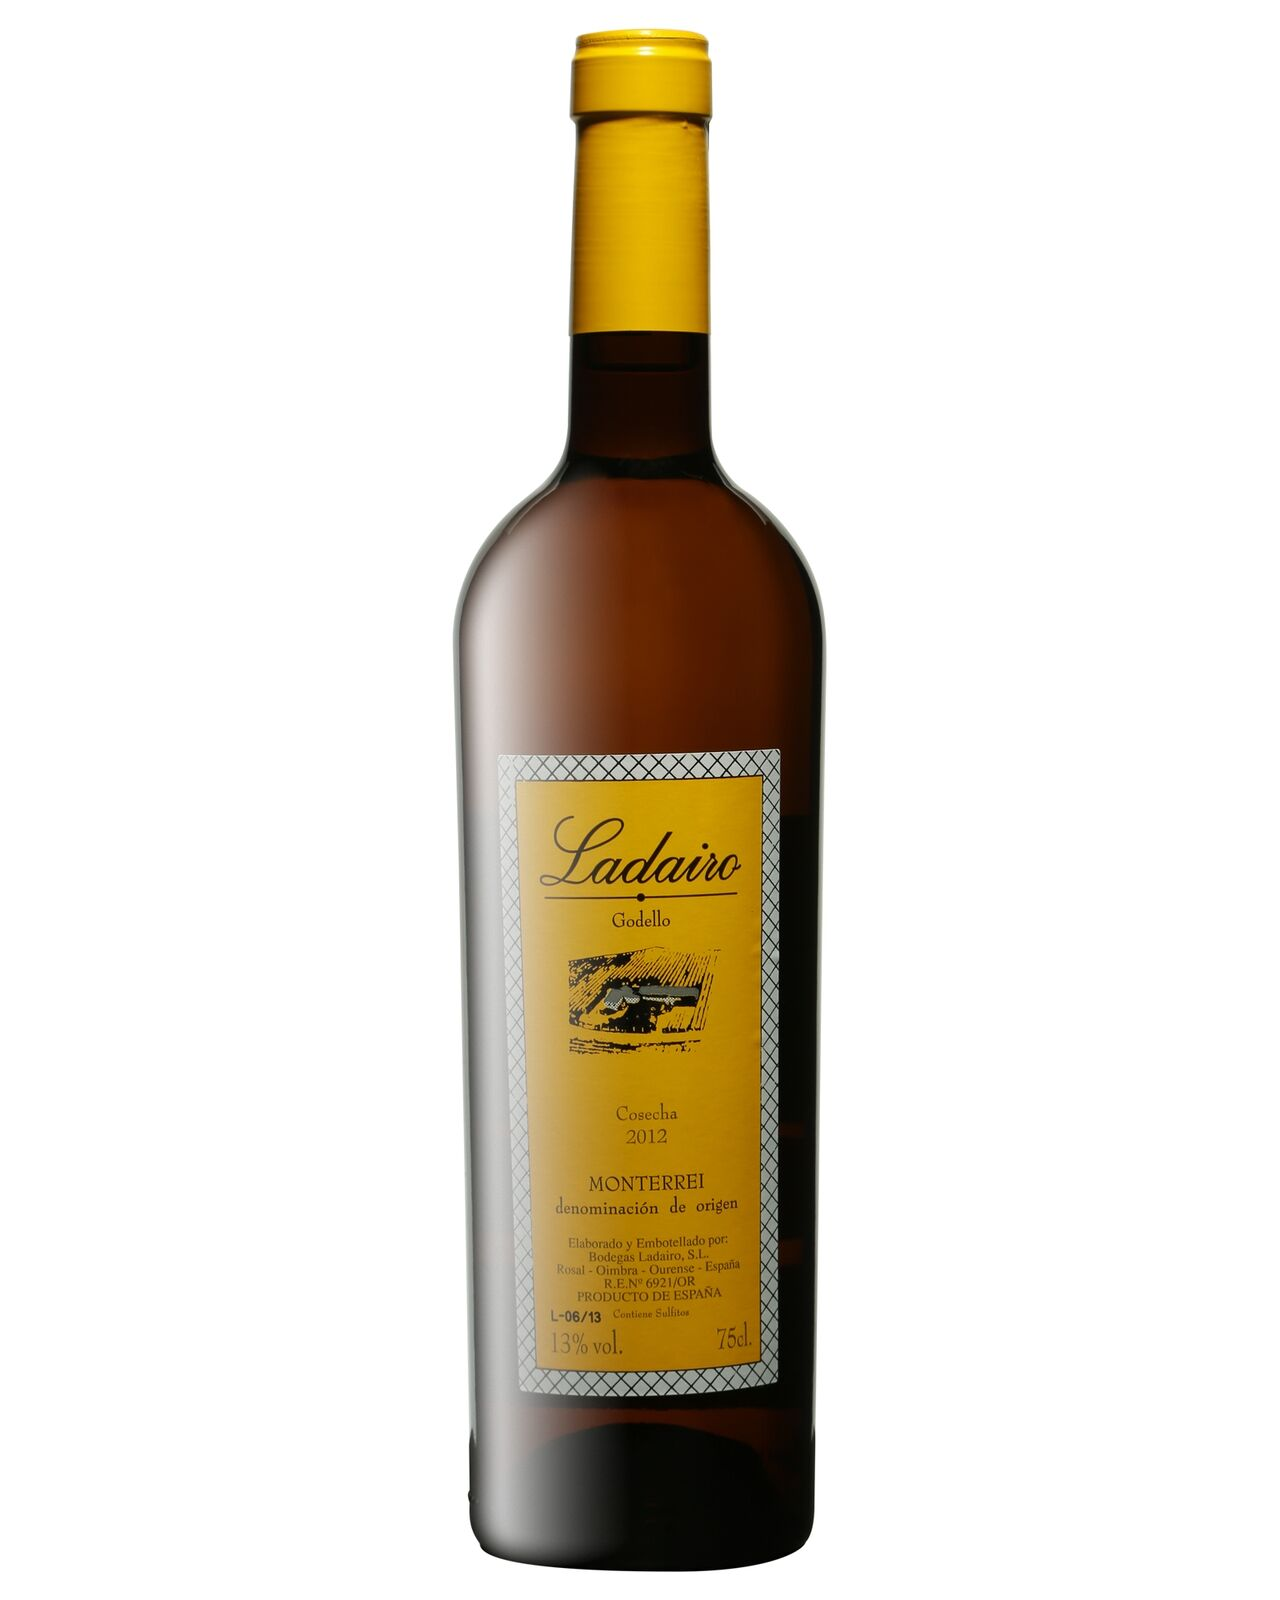 Ladairo Godello Blanco 2015 case of 6 Dry White Wine 750mL